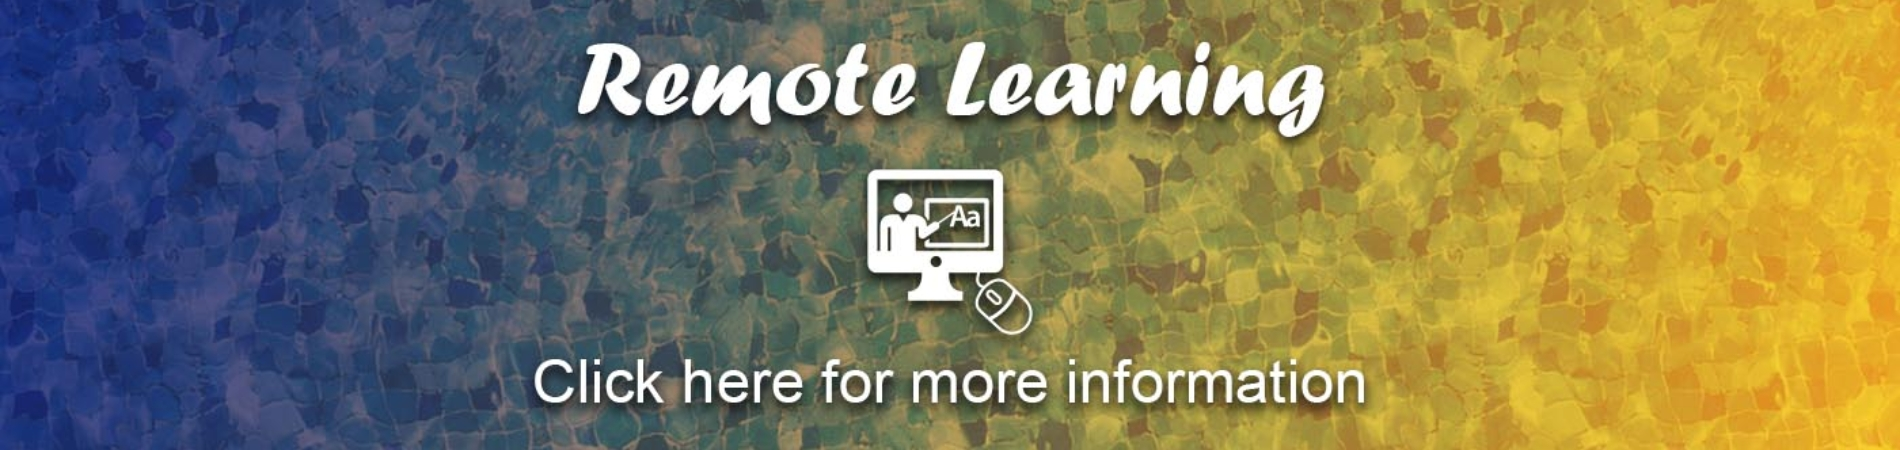 Remote Learning-1